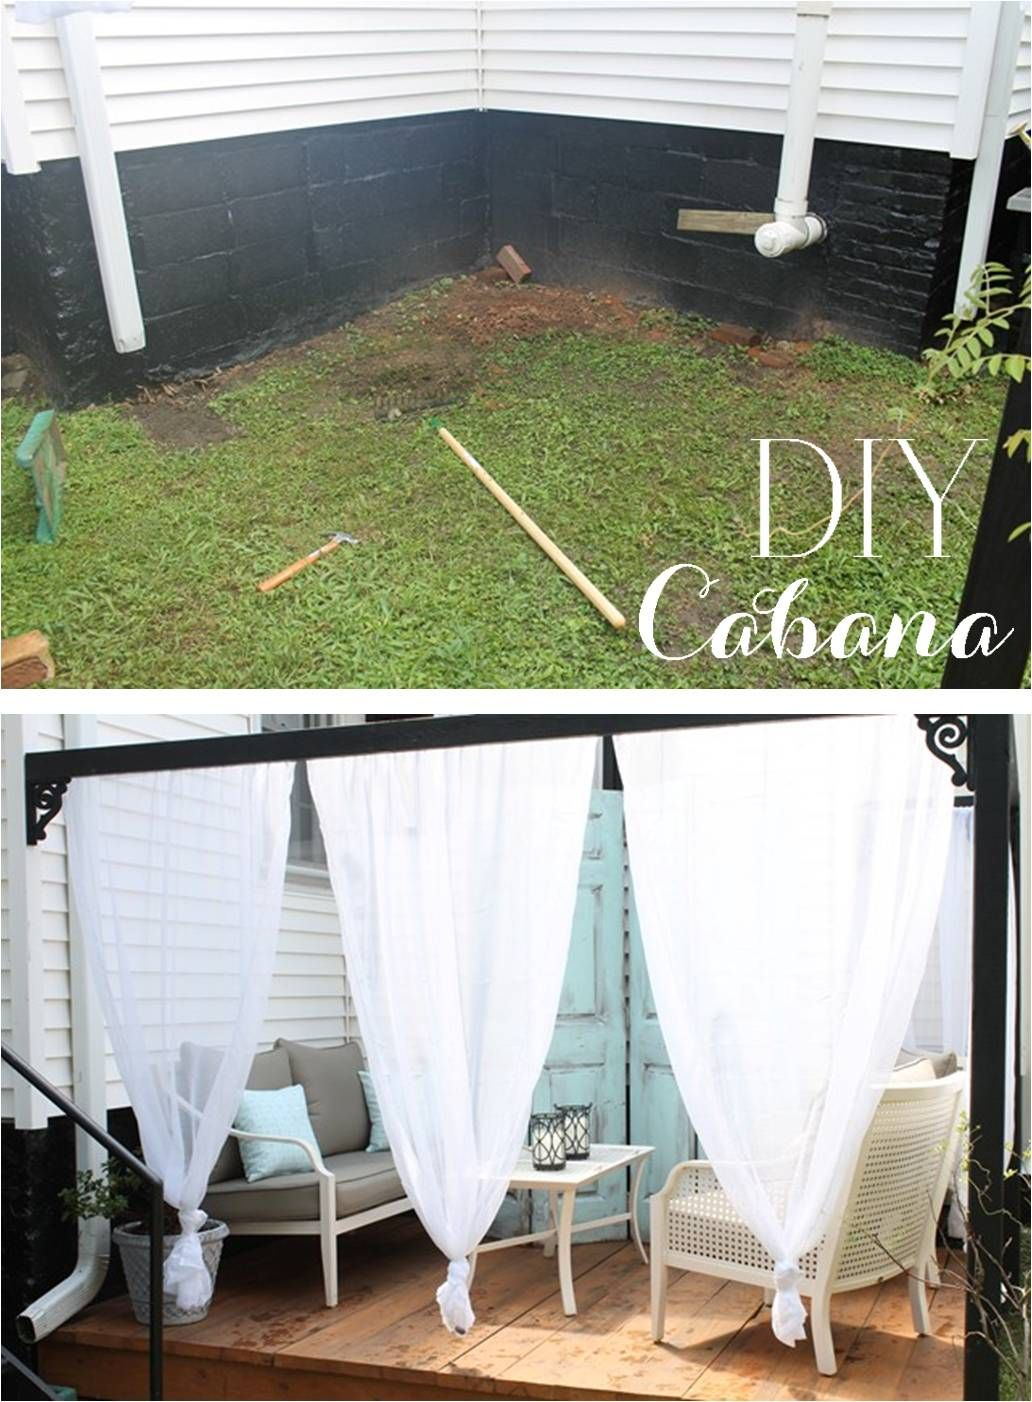 diy outdoor cabana with curtains outdoor cabana cabana and canopy